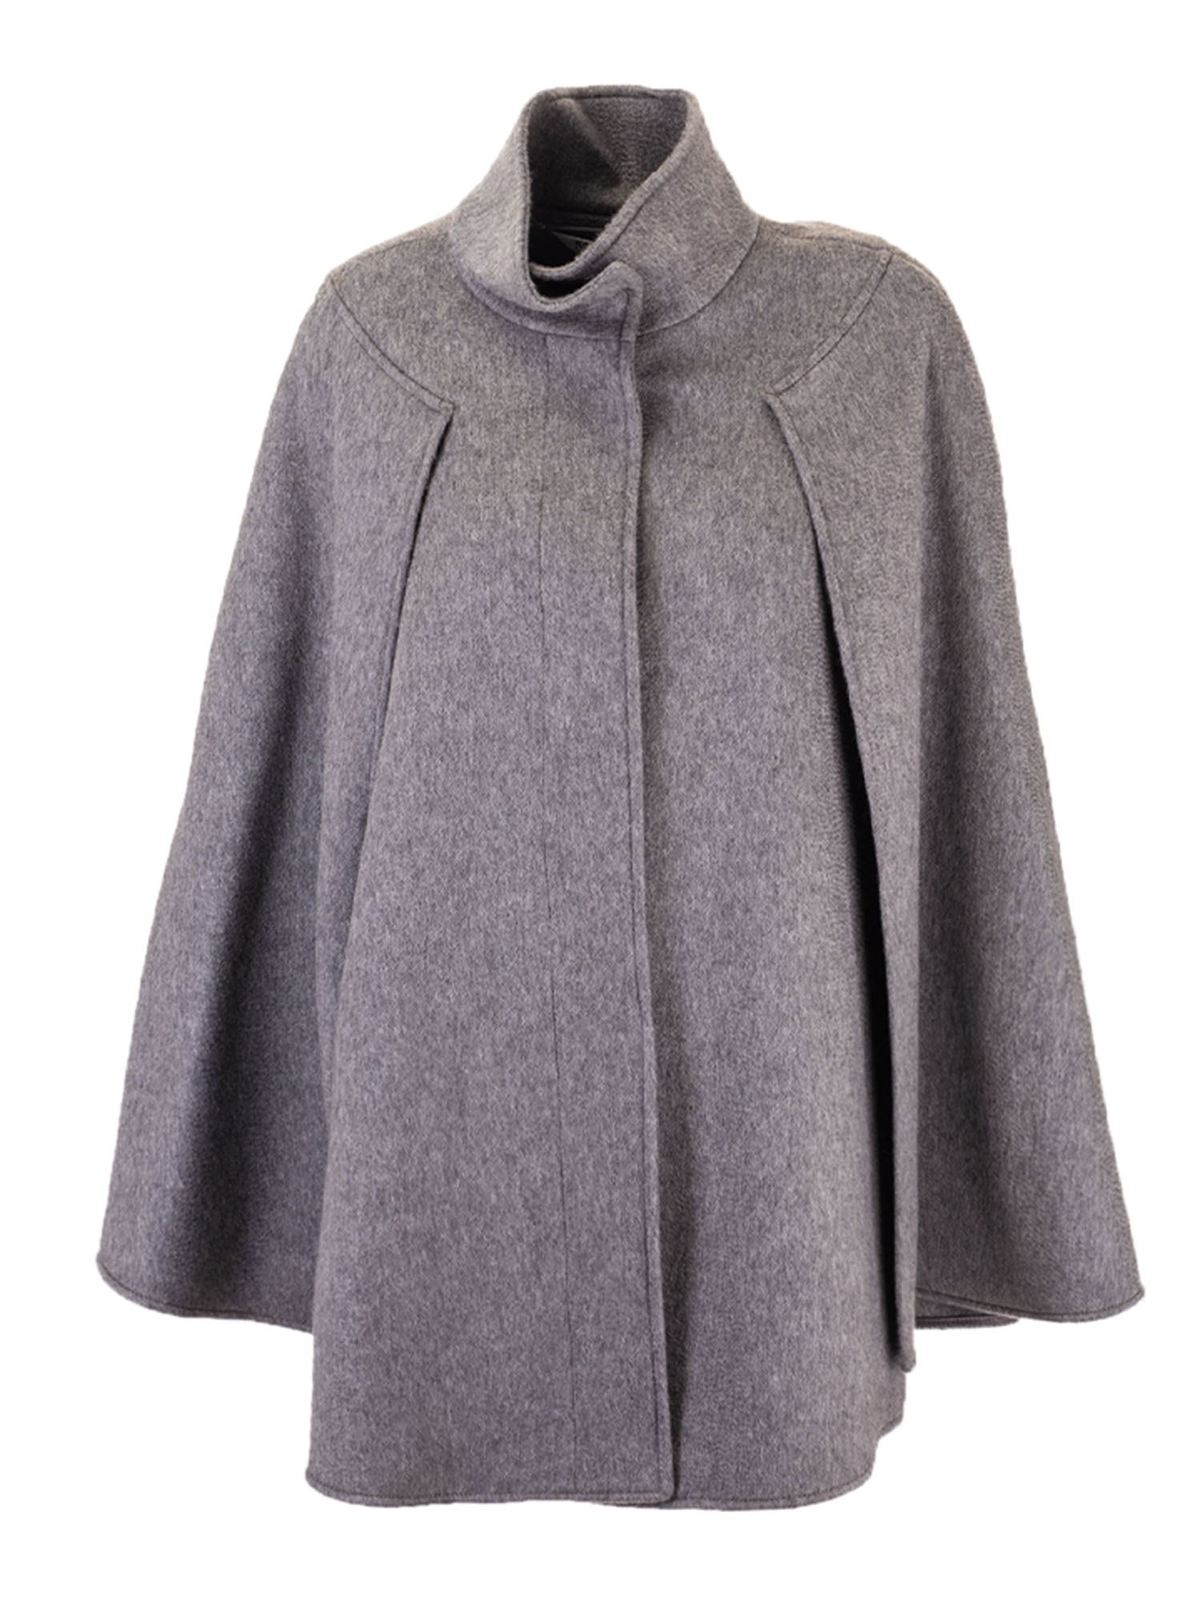 MAX MARA DANY CAPE IN GREY